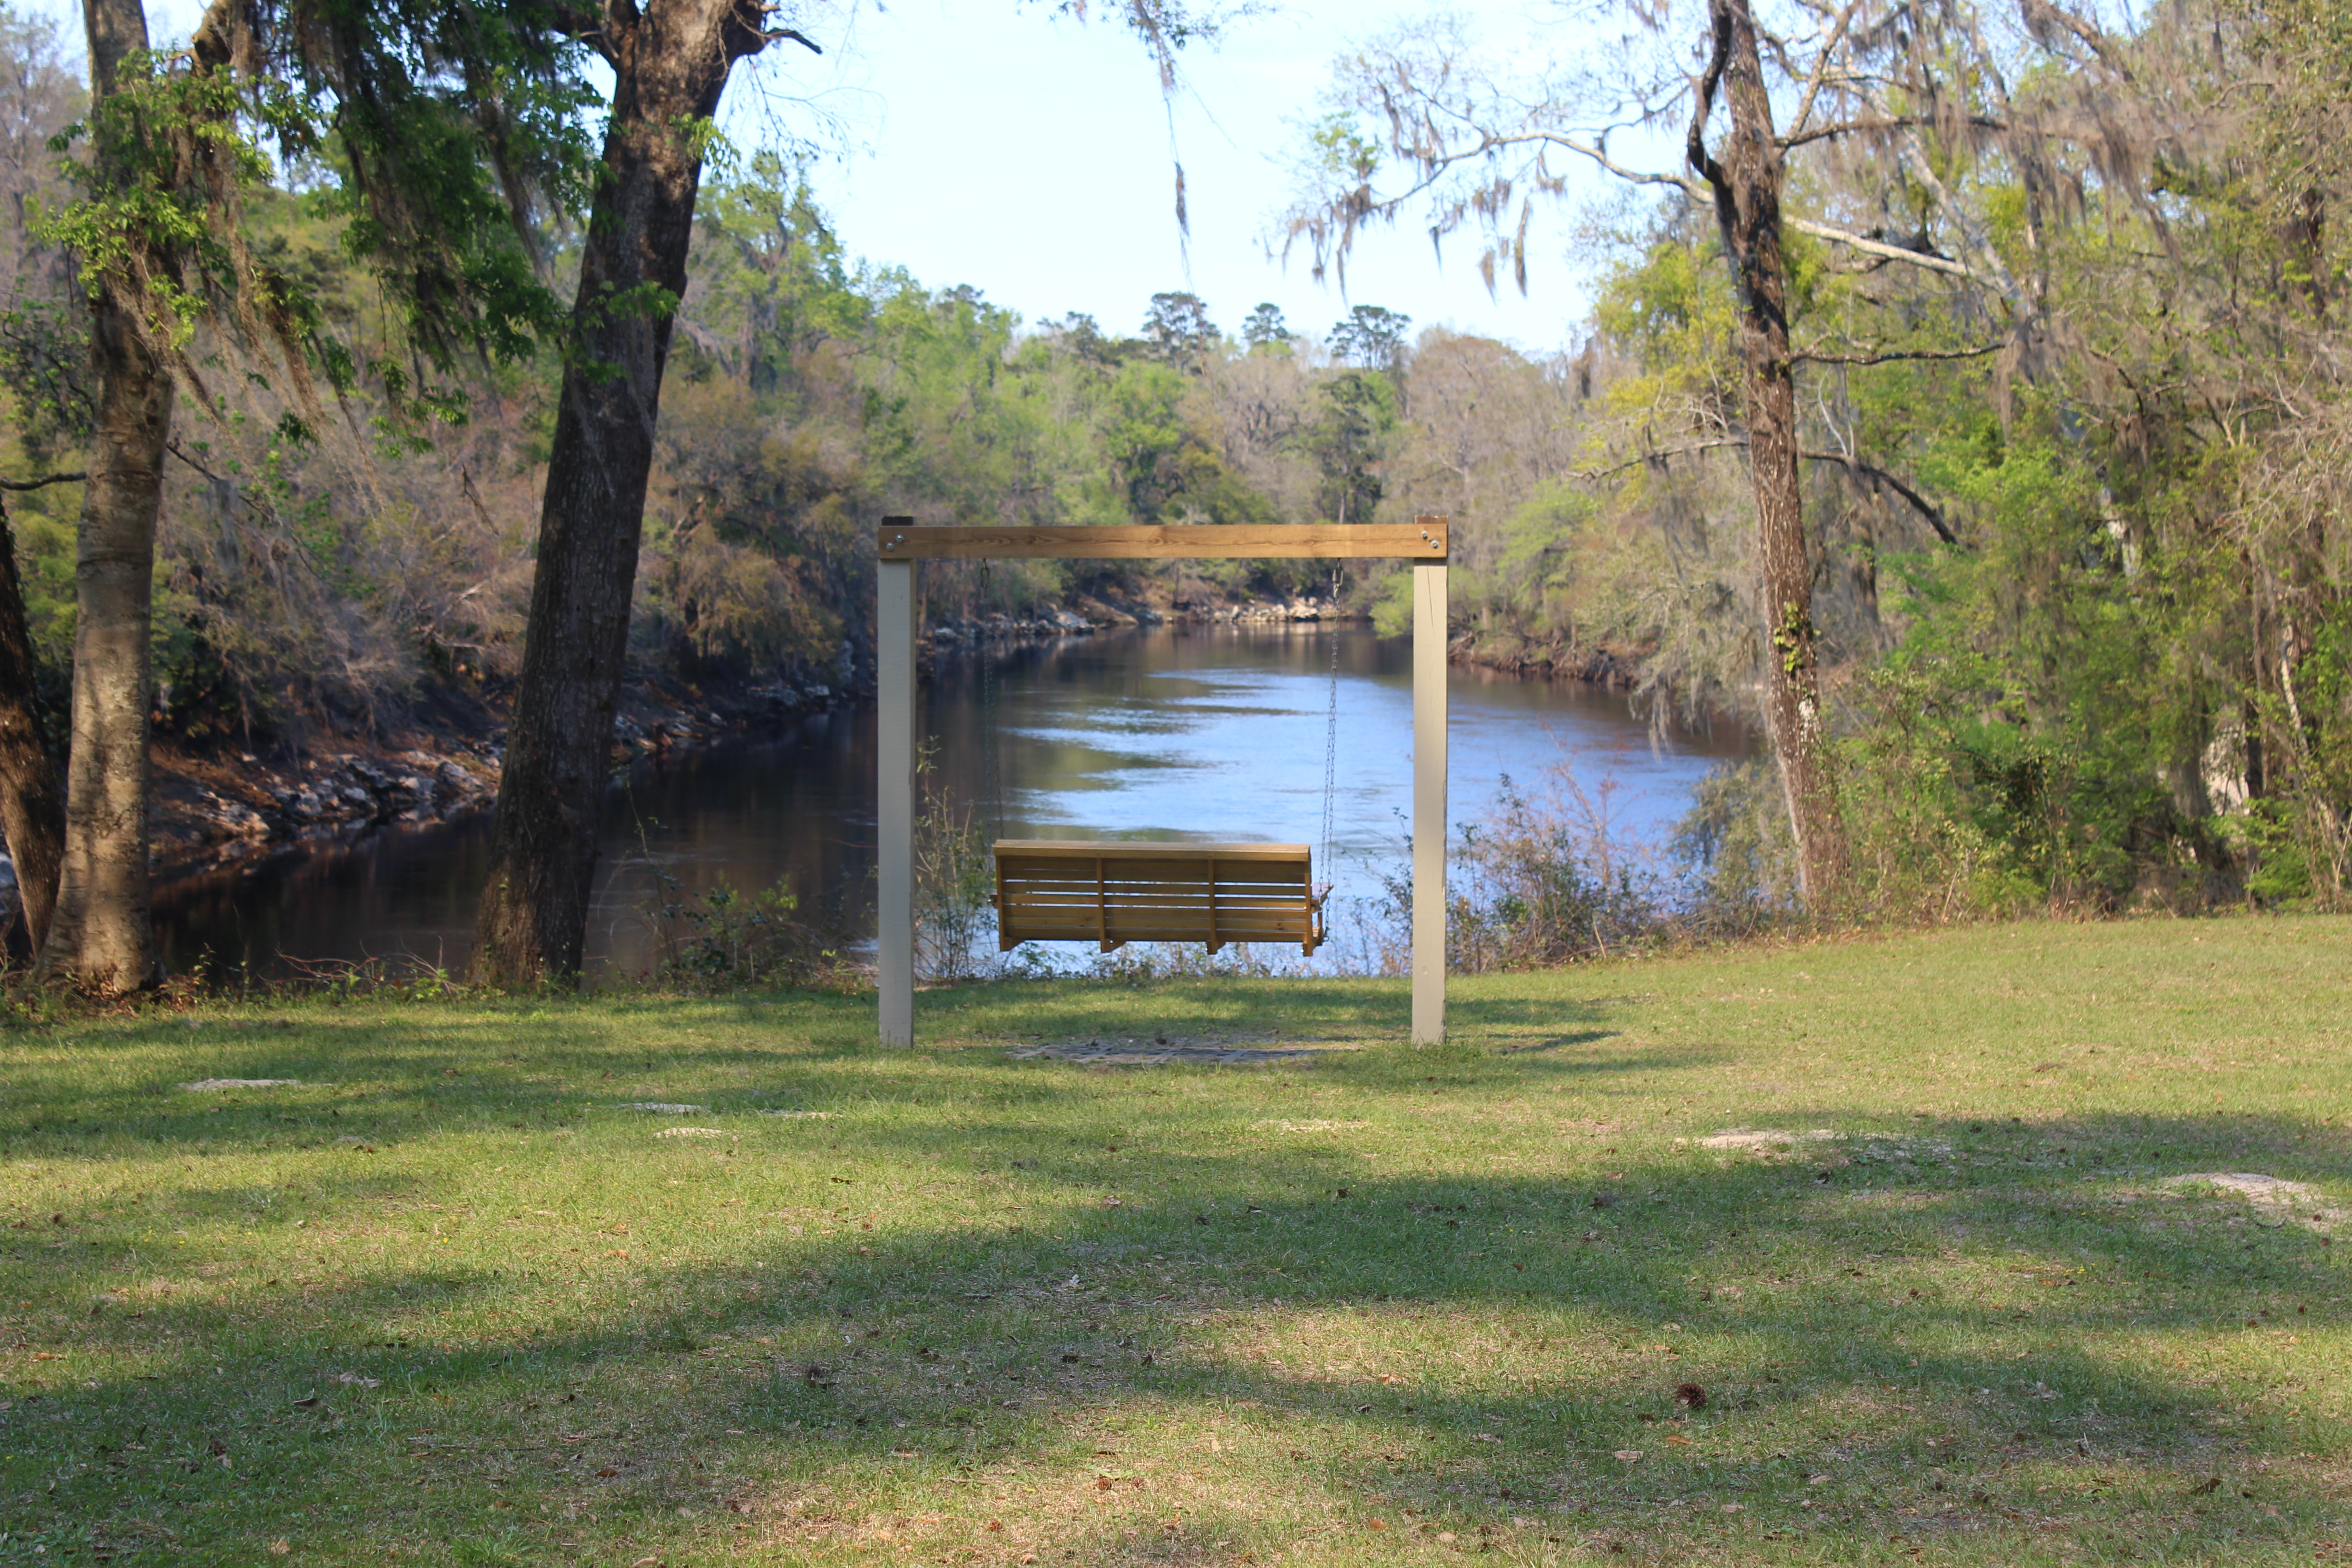 View Of The Suwannee River Behind The Swing